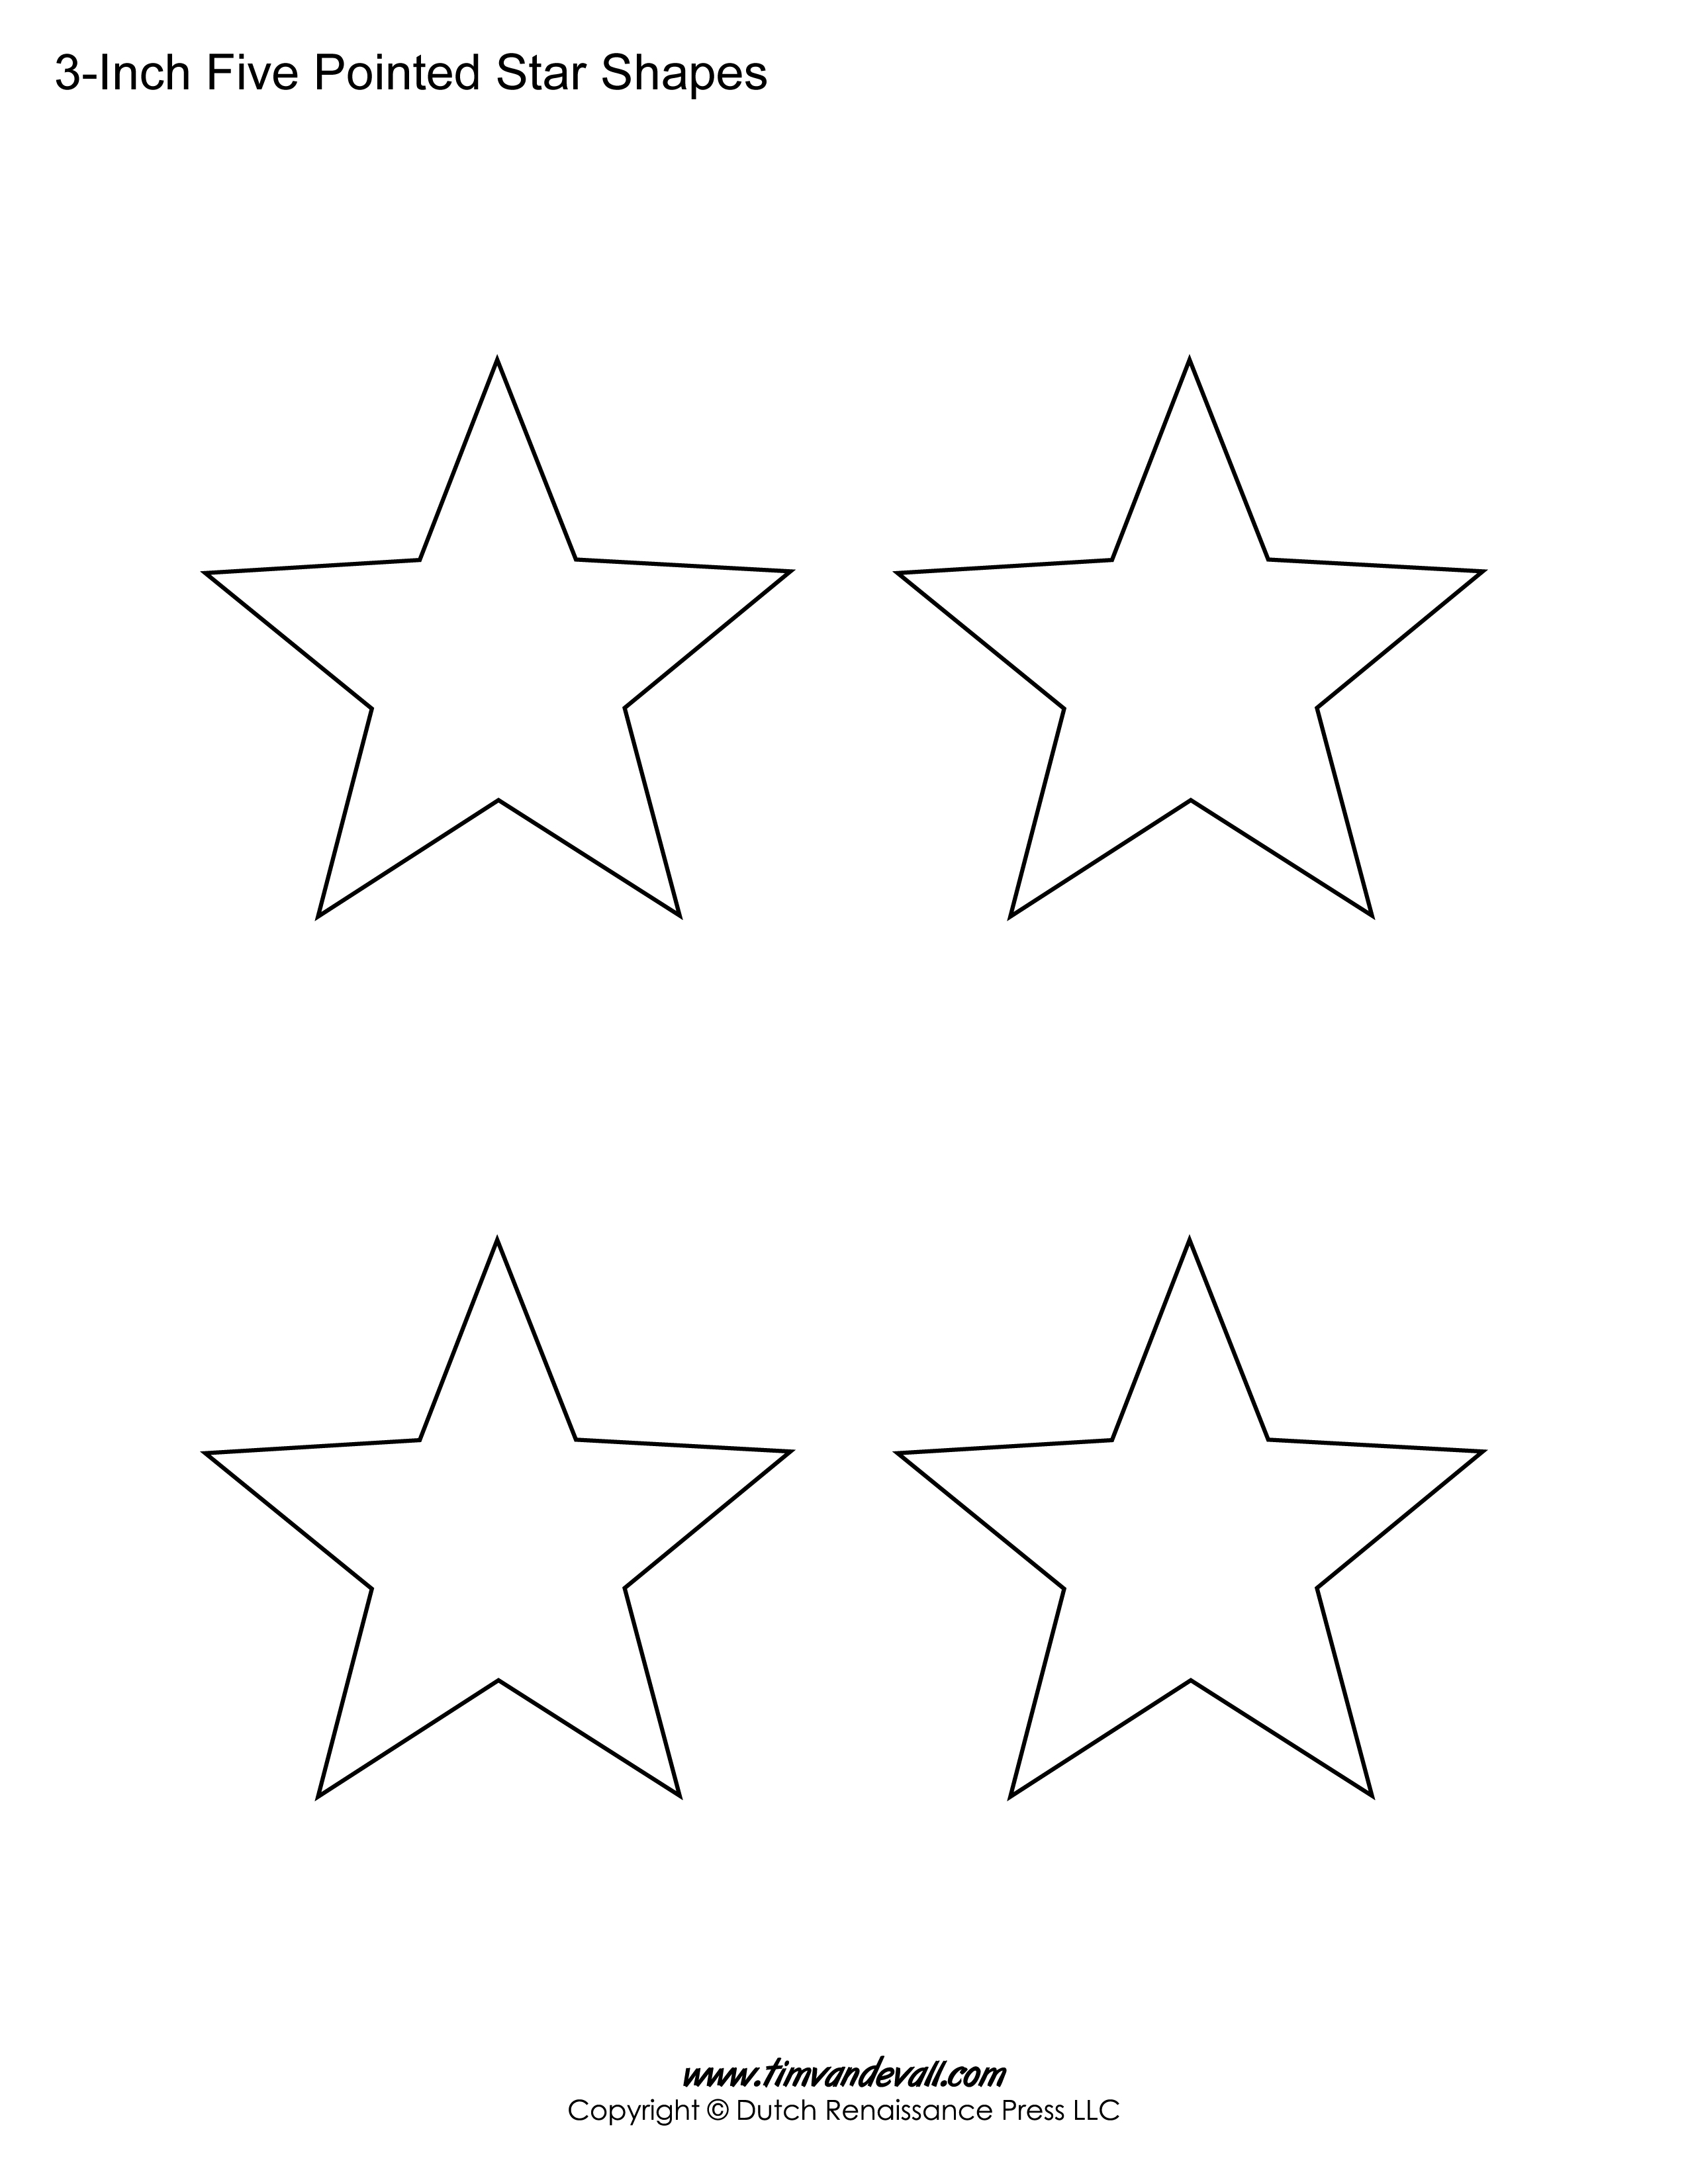 five pointed stars printable five pointed star templates blank shape pdfs on 3 7 8 inch printable template